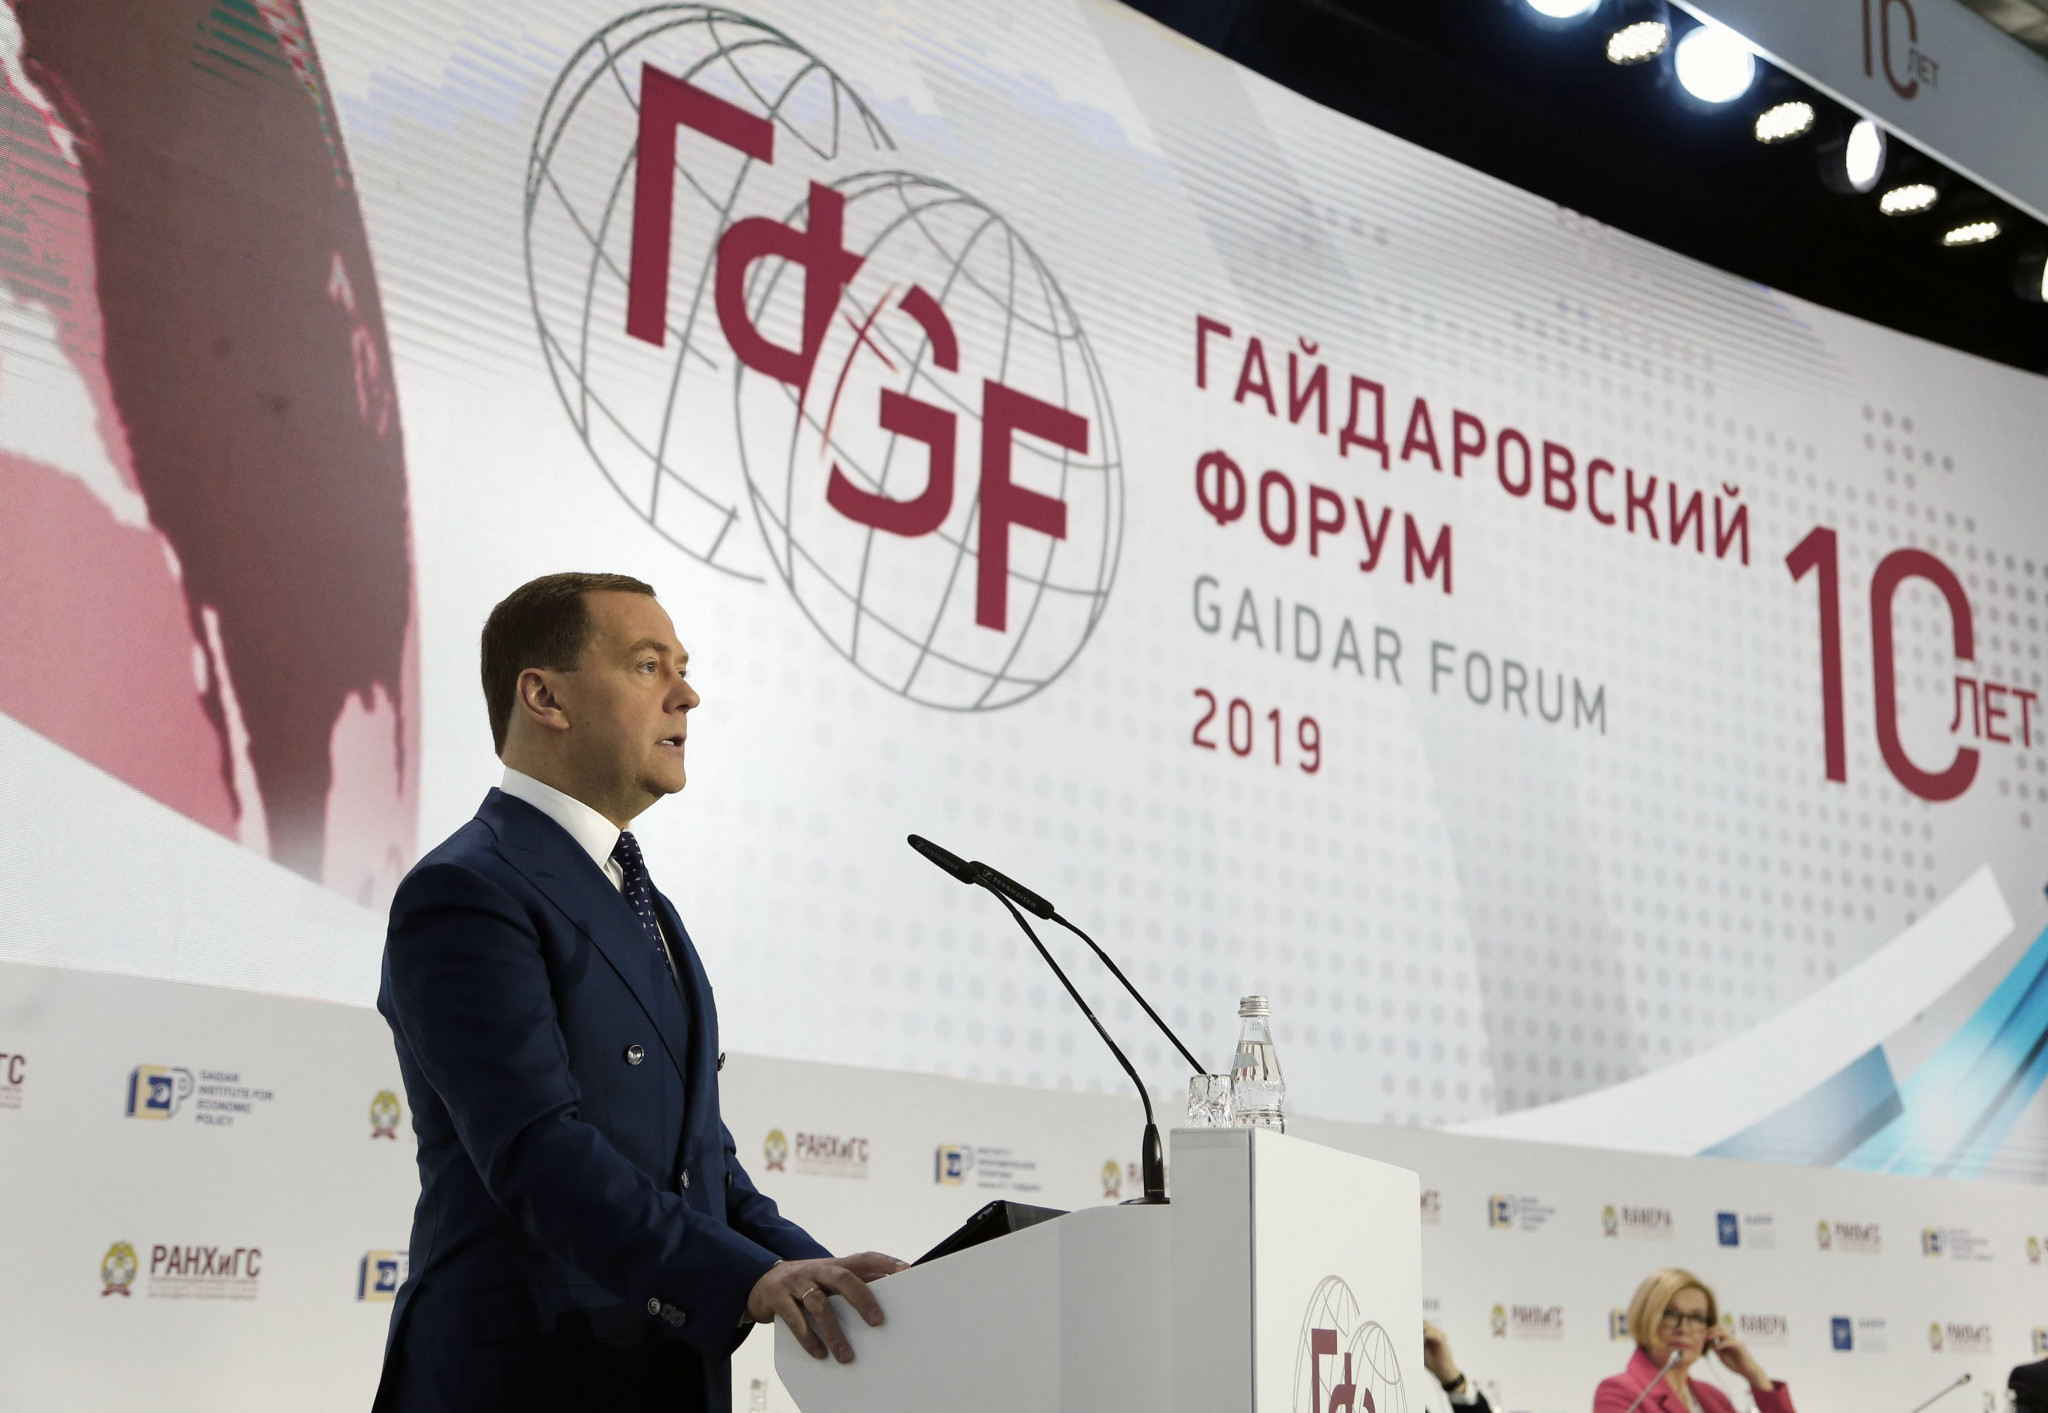 Russian Prime Minister Medvedev to be among guests at Minsk 2019 Opening Ceremony